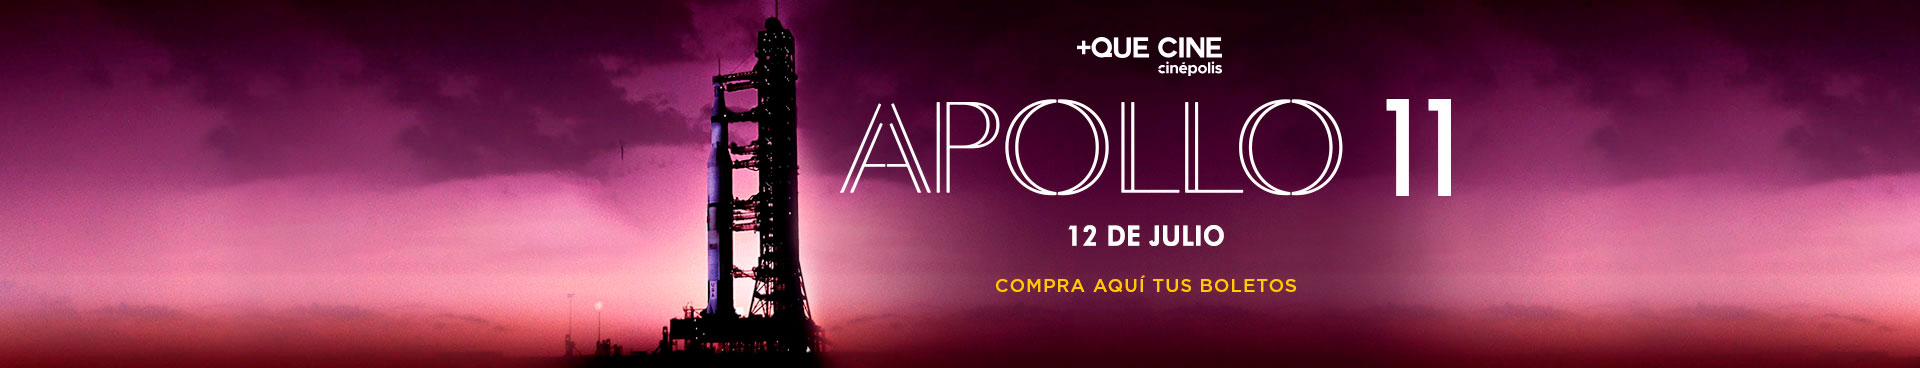 +Que Cine: Apollo 11